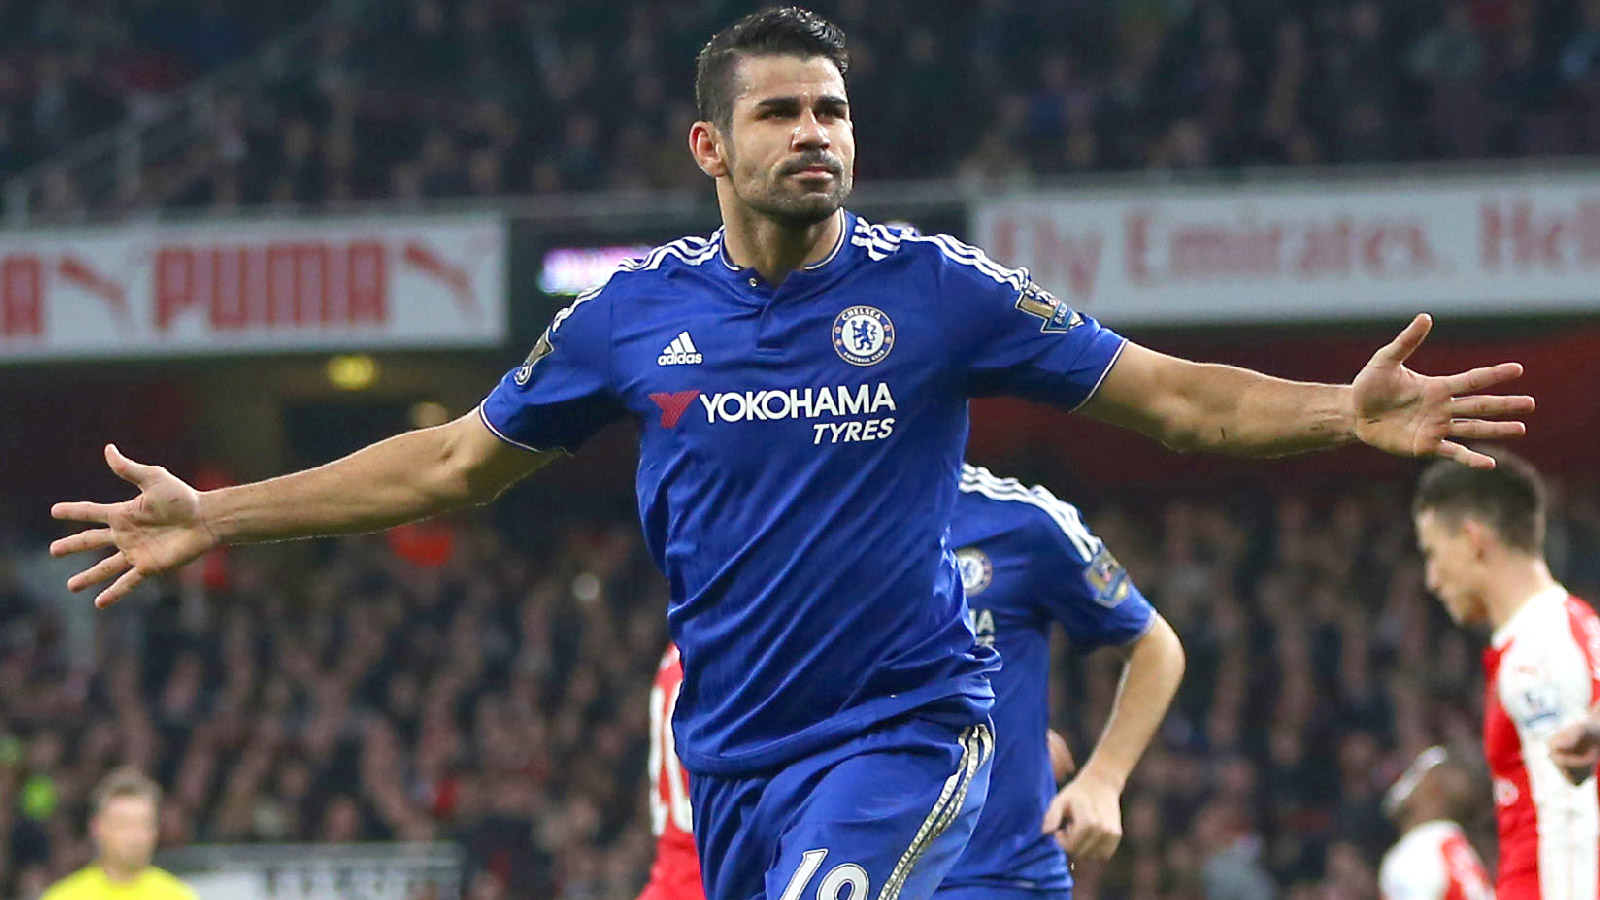 Chelsea reject late offer from Atletico Madrid for striker Costa